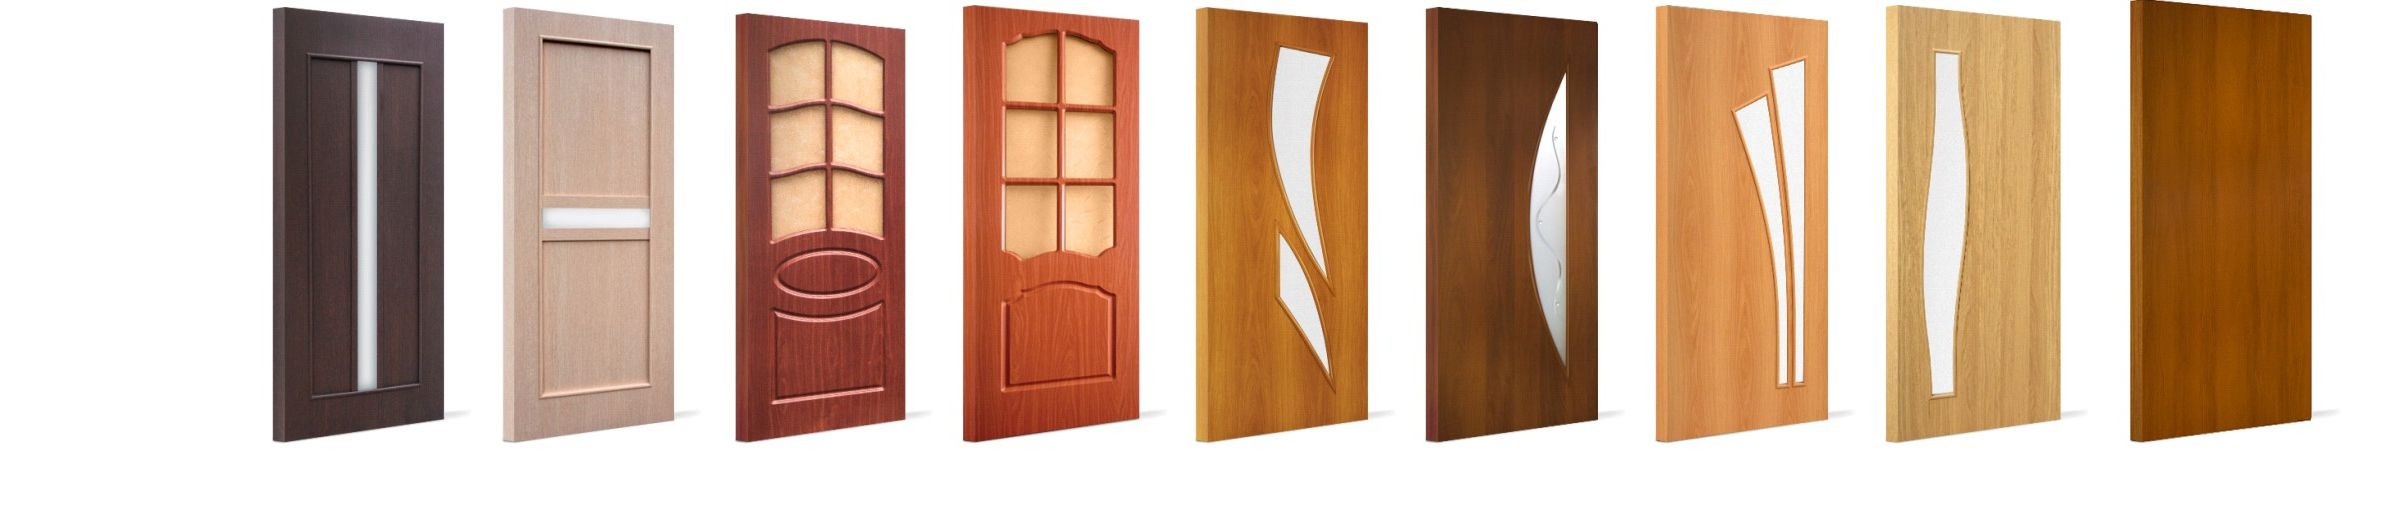 A huge variety of styles and designs and colors of wooden interior doors